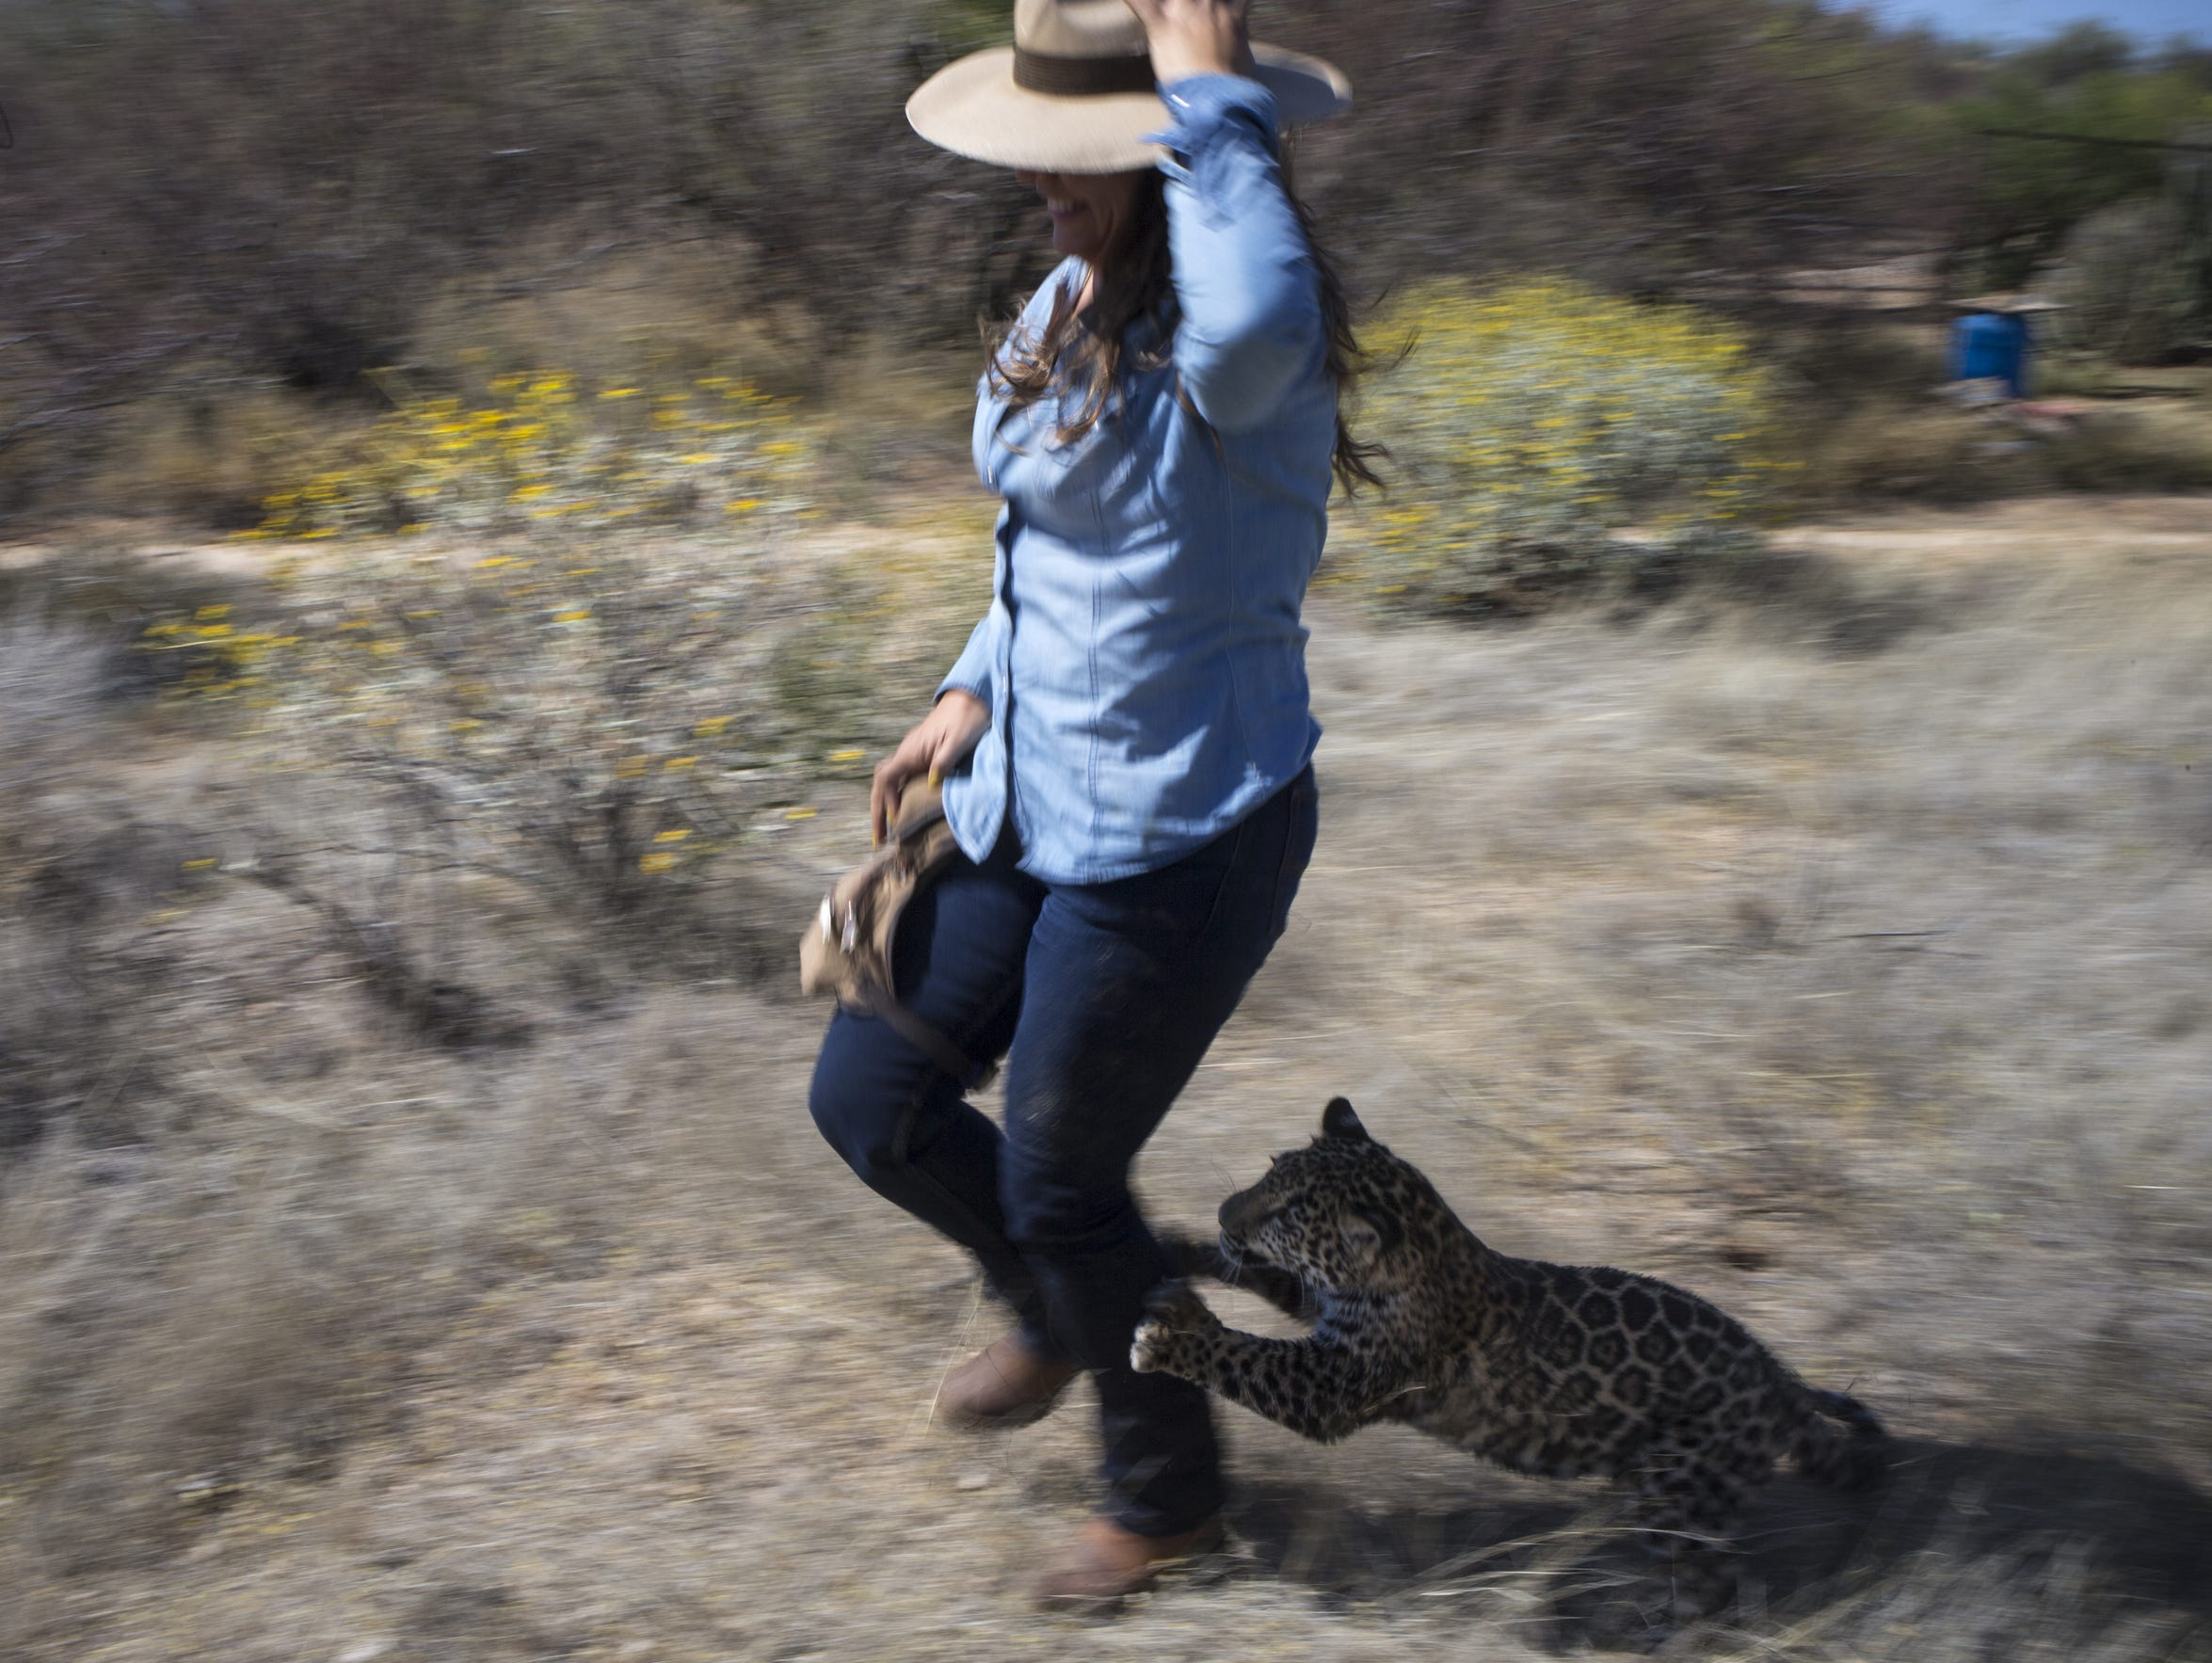 Tutu'uli, a 6-month-old female jaguar, chases Shandira